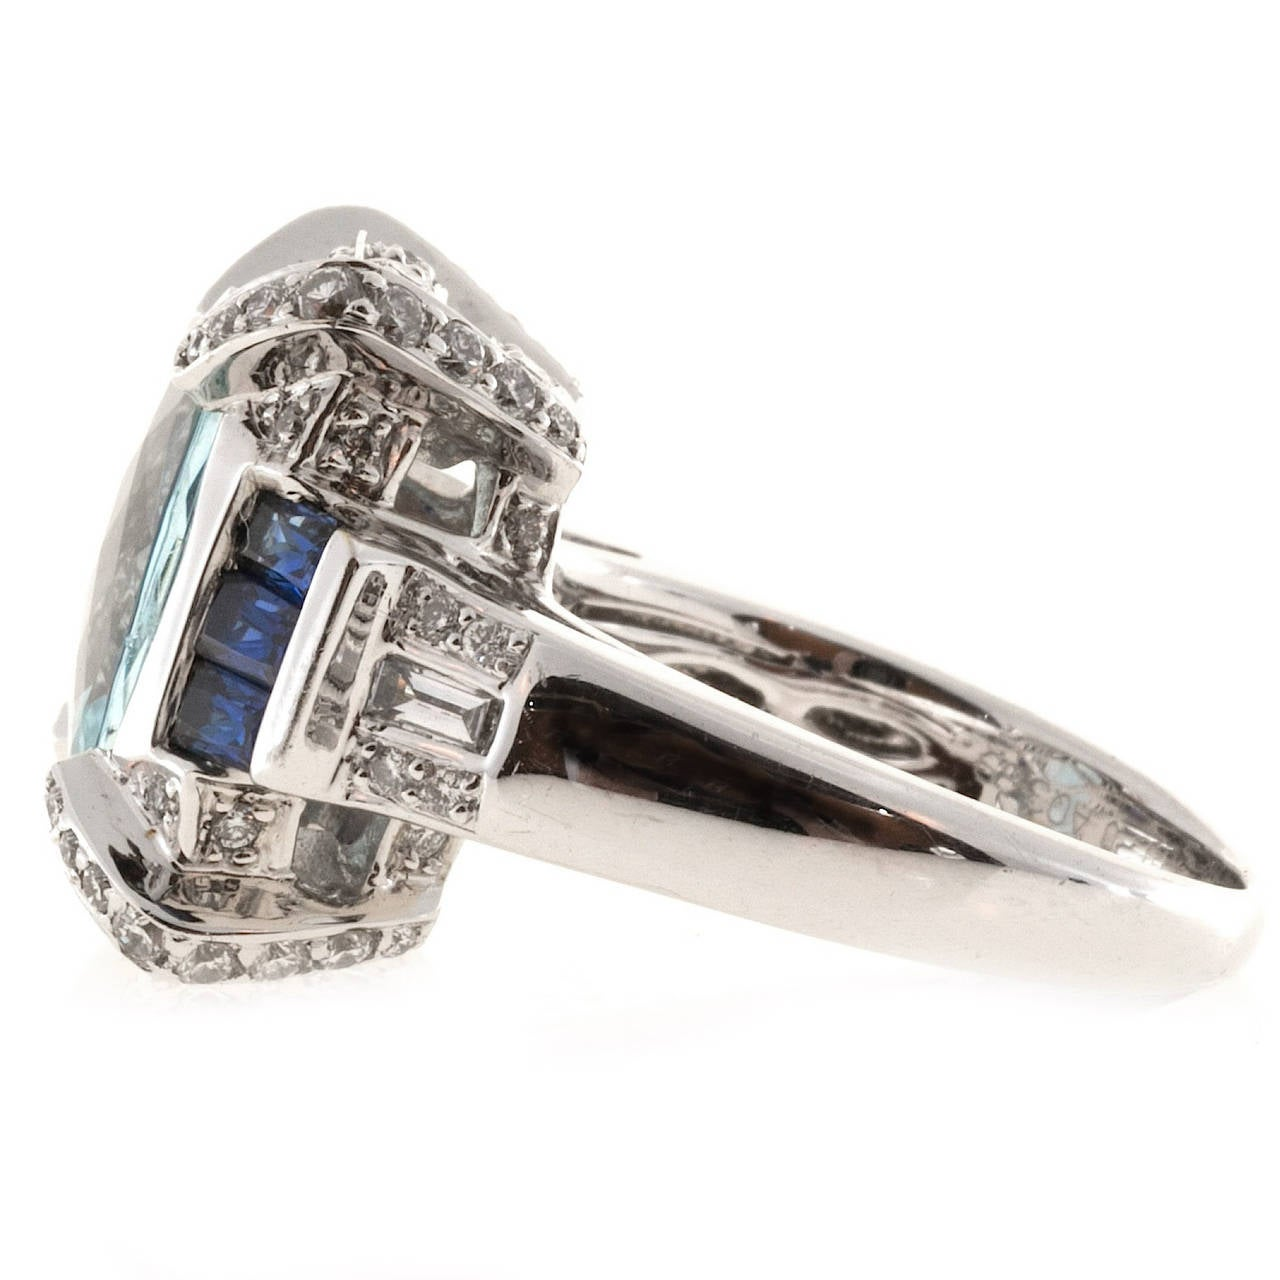 Baguette Cut Charles Krypell Aquamarine Sapphire Diamond Gold Cocktail Ring For Sale